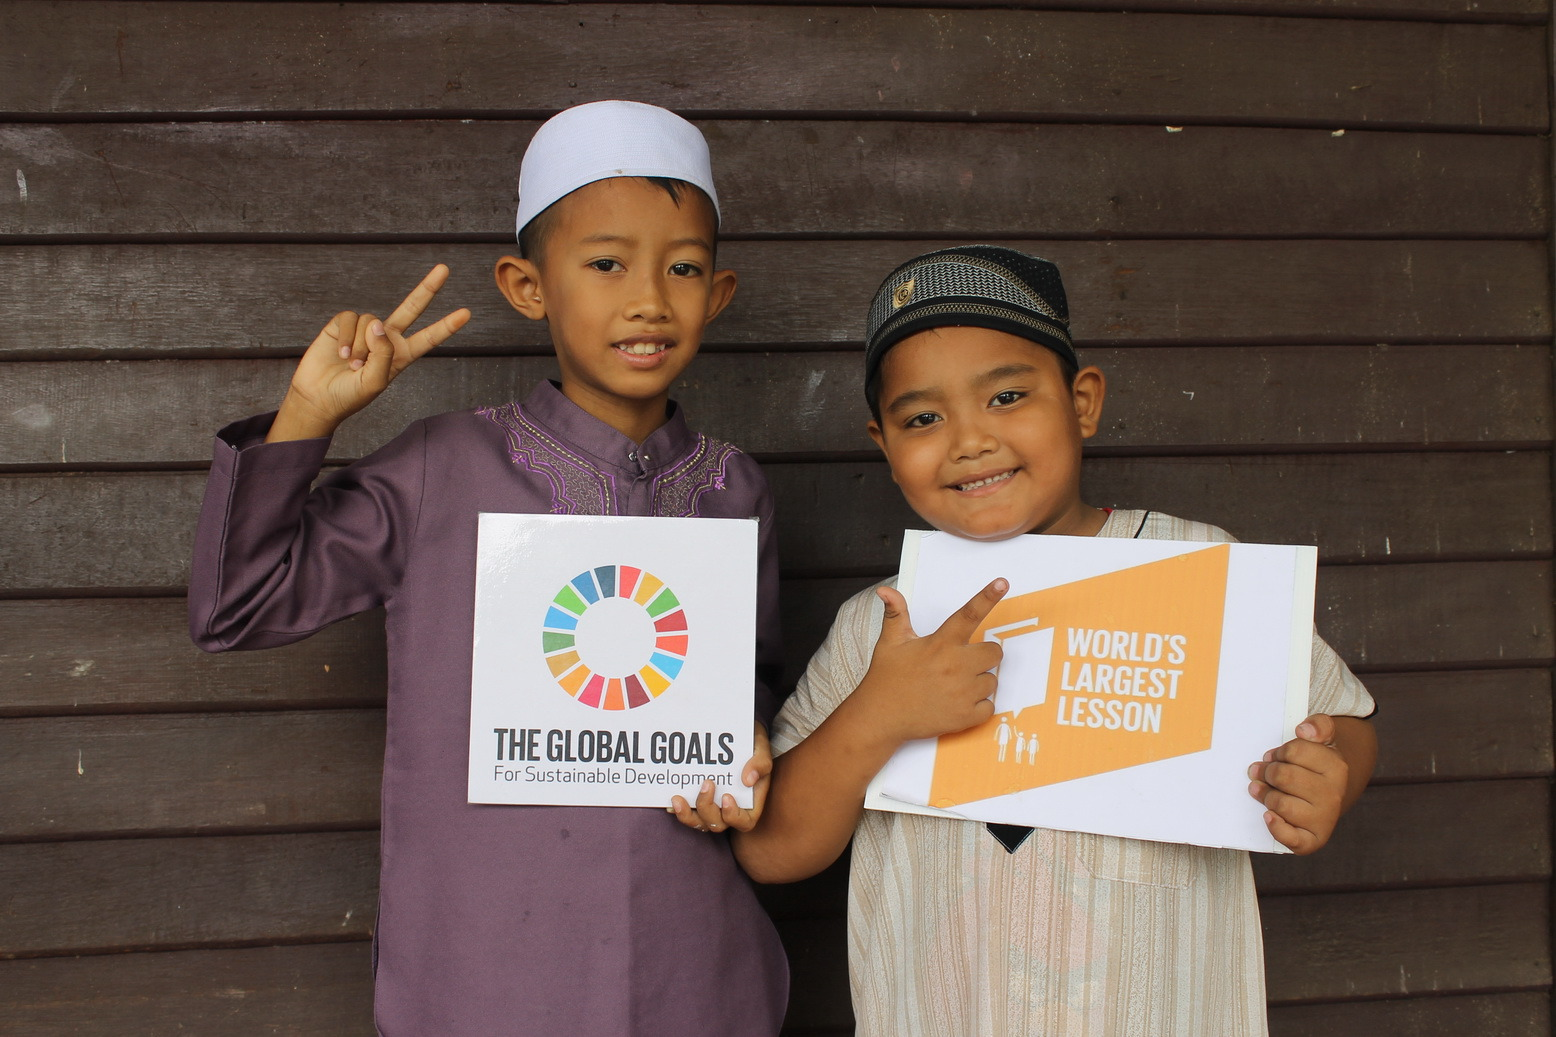 GlobalGoals_children_copyrightProjectEveryone.jpg